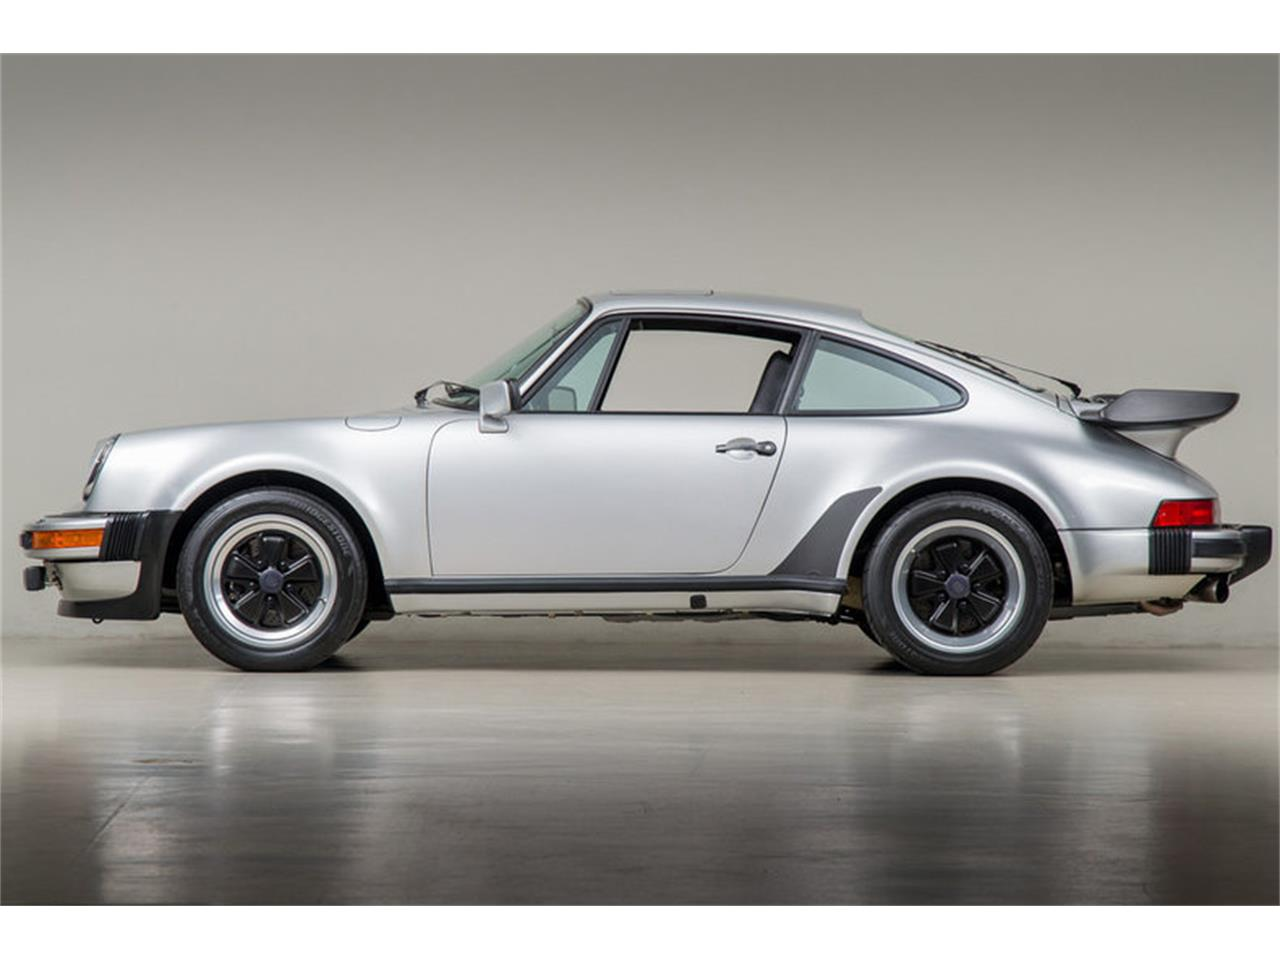 Large Picture of 1979 Porsche 930 Turbo located in California Offered by Canepa - LAM3